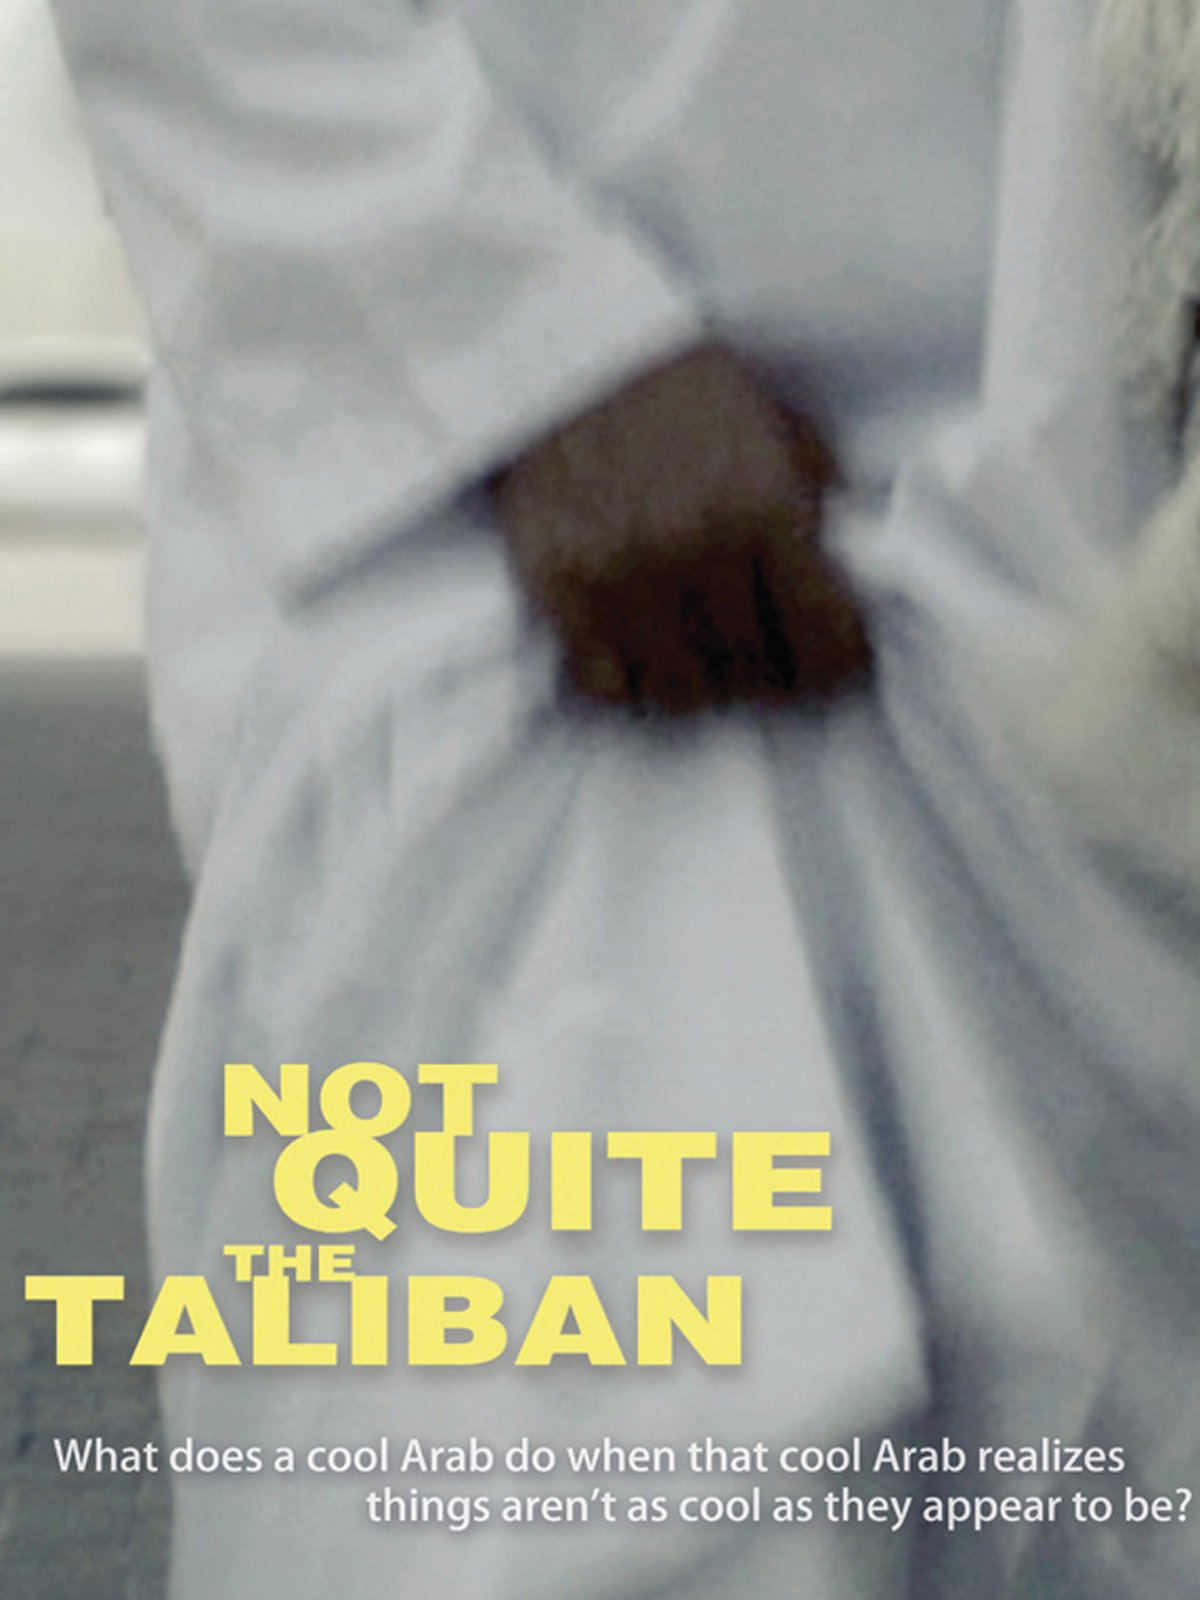 Not quite the Taliban